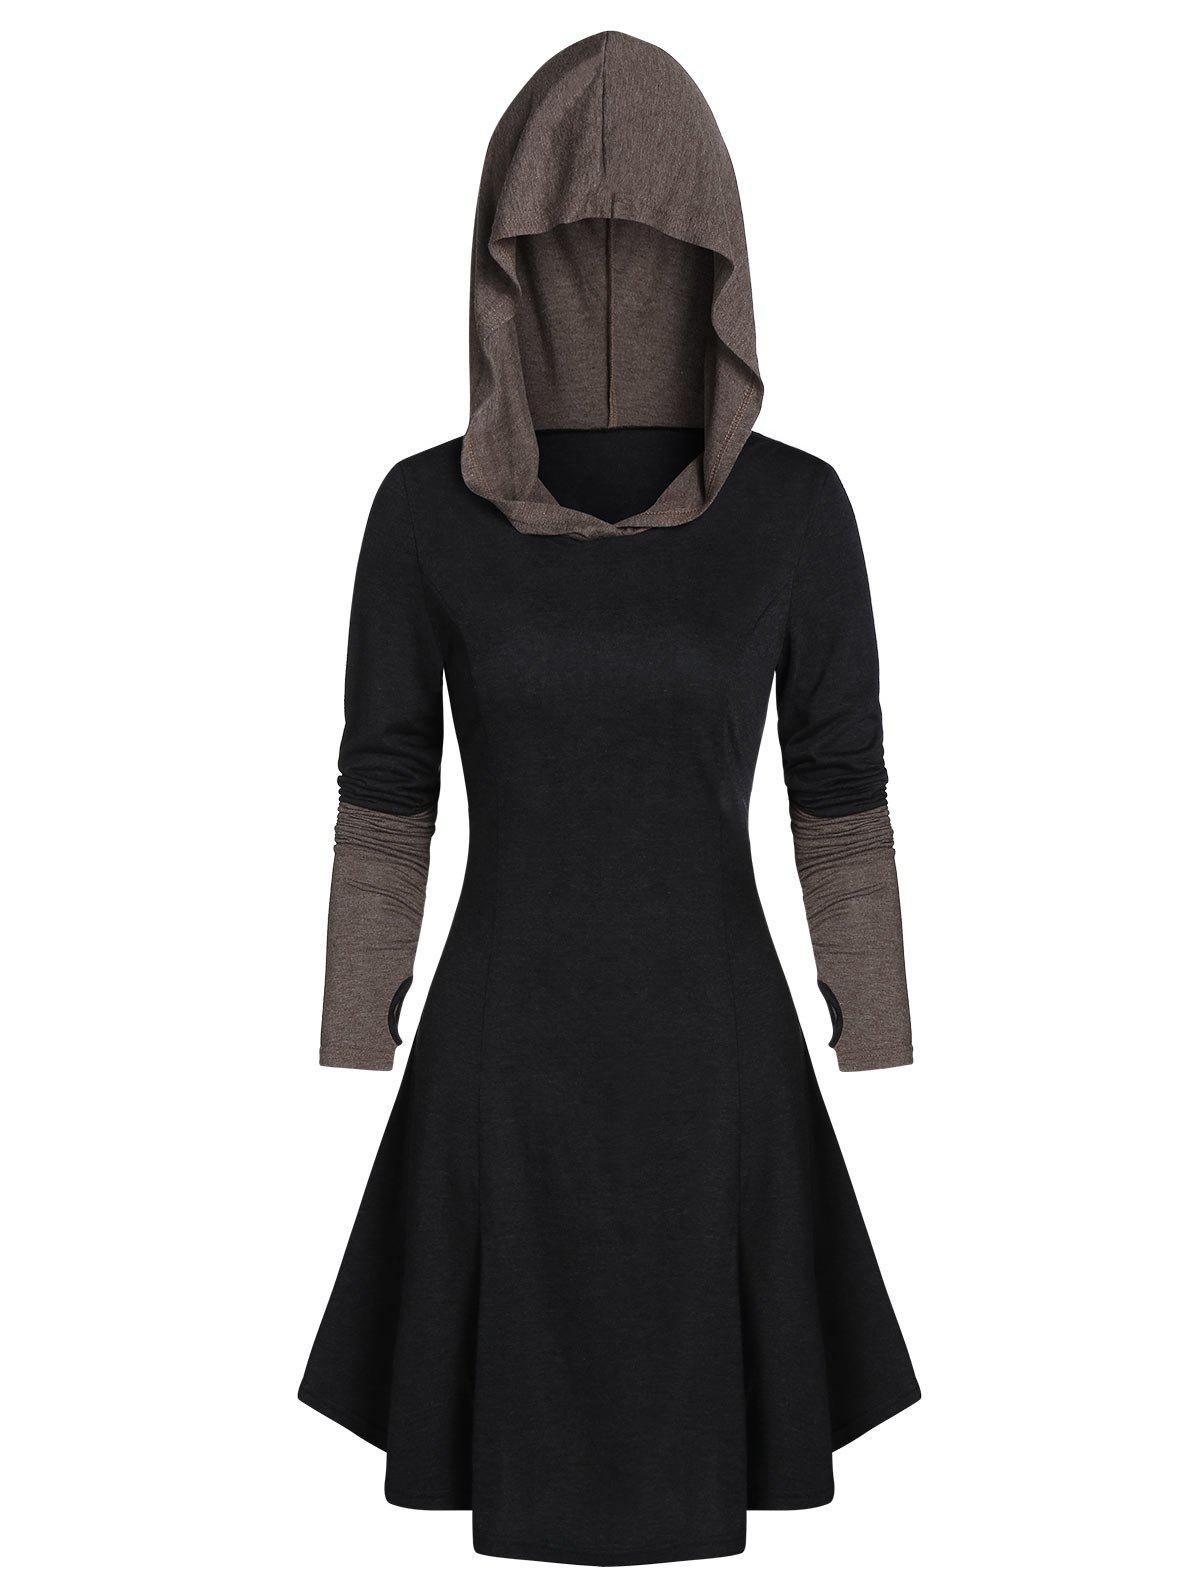 Discount Hooded Glove Sleeve Lace-up Contrast Dress